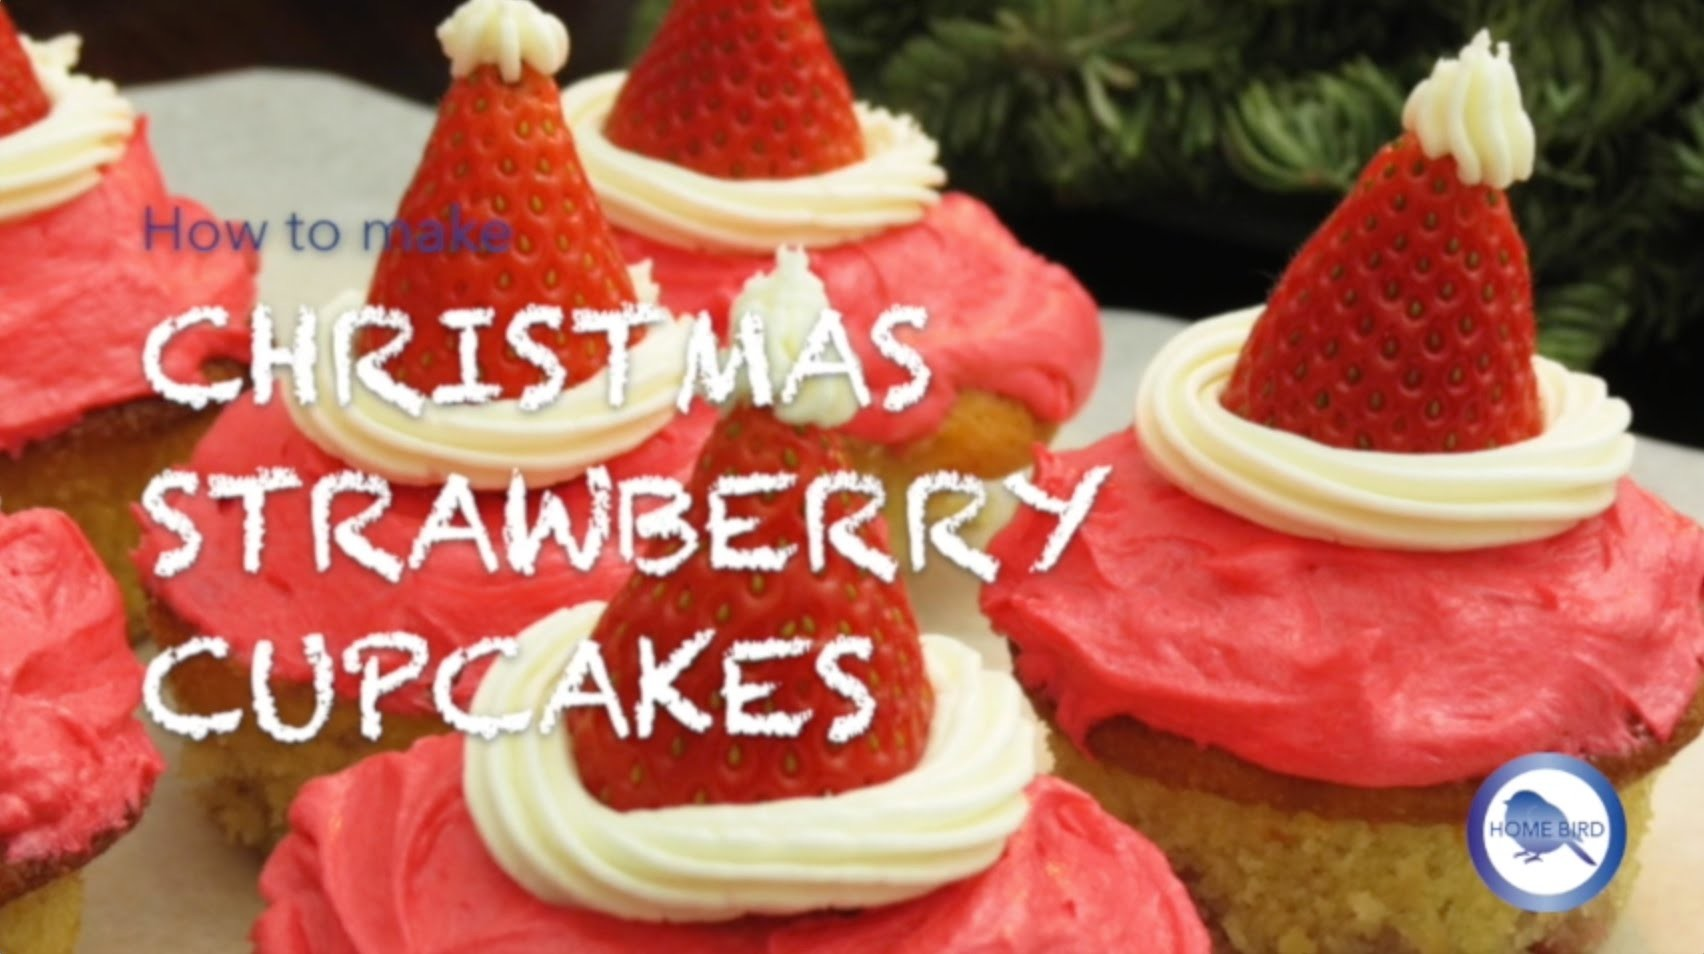 How to make Christmas Cupcakes - Strawberry Cupcakes recipe | Home Bird